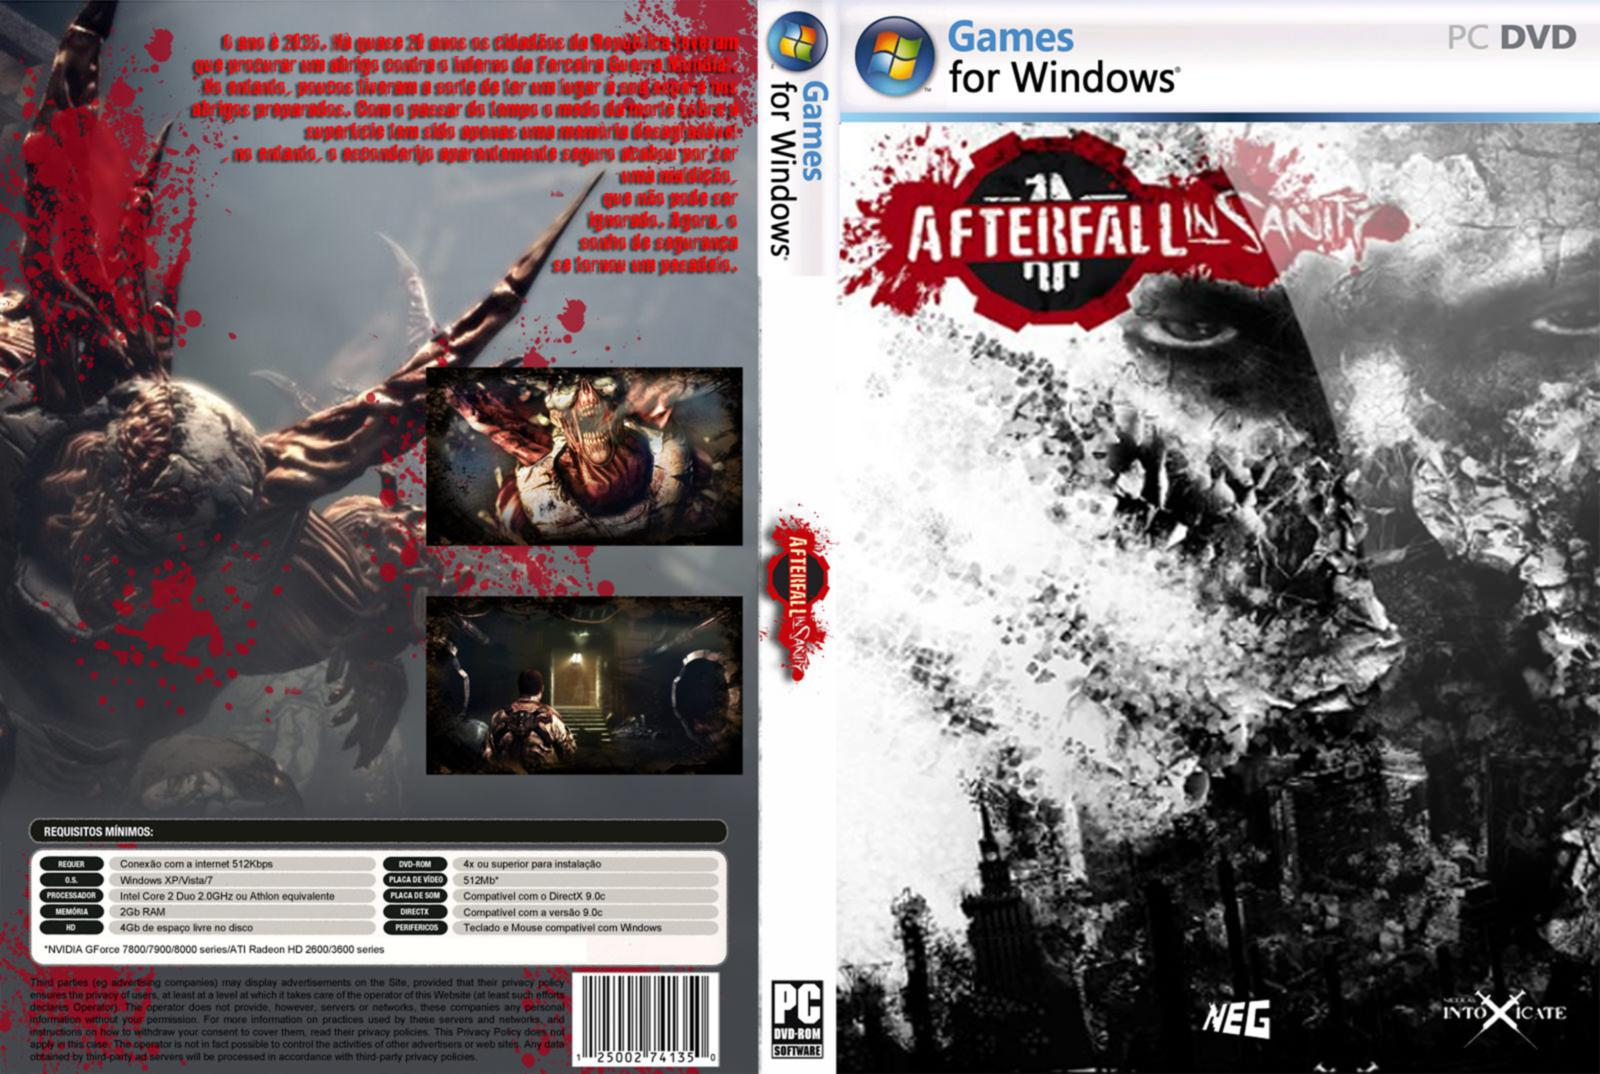 Afterfall  InSanity pc game download